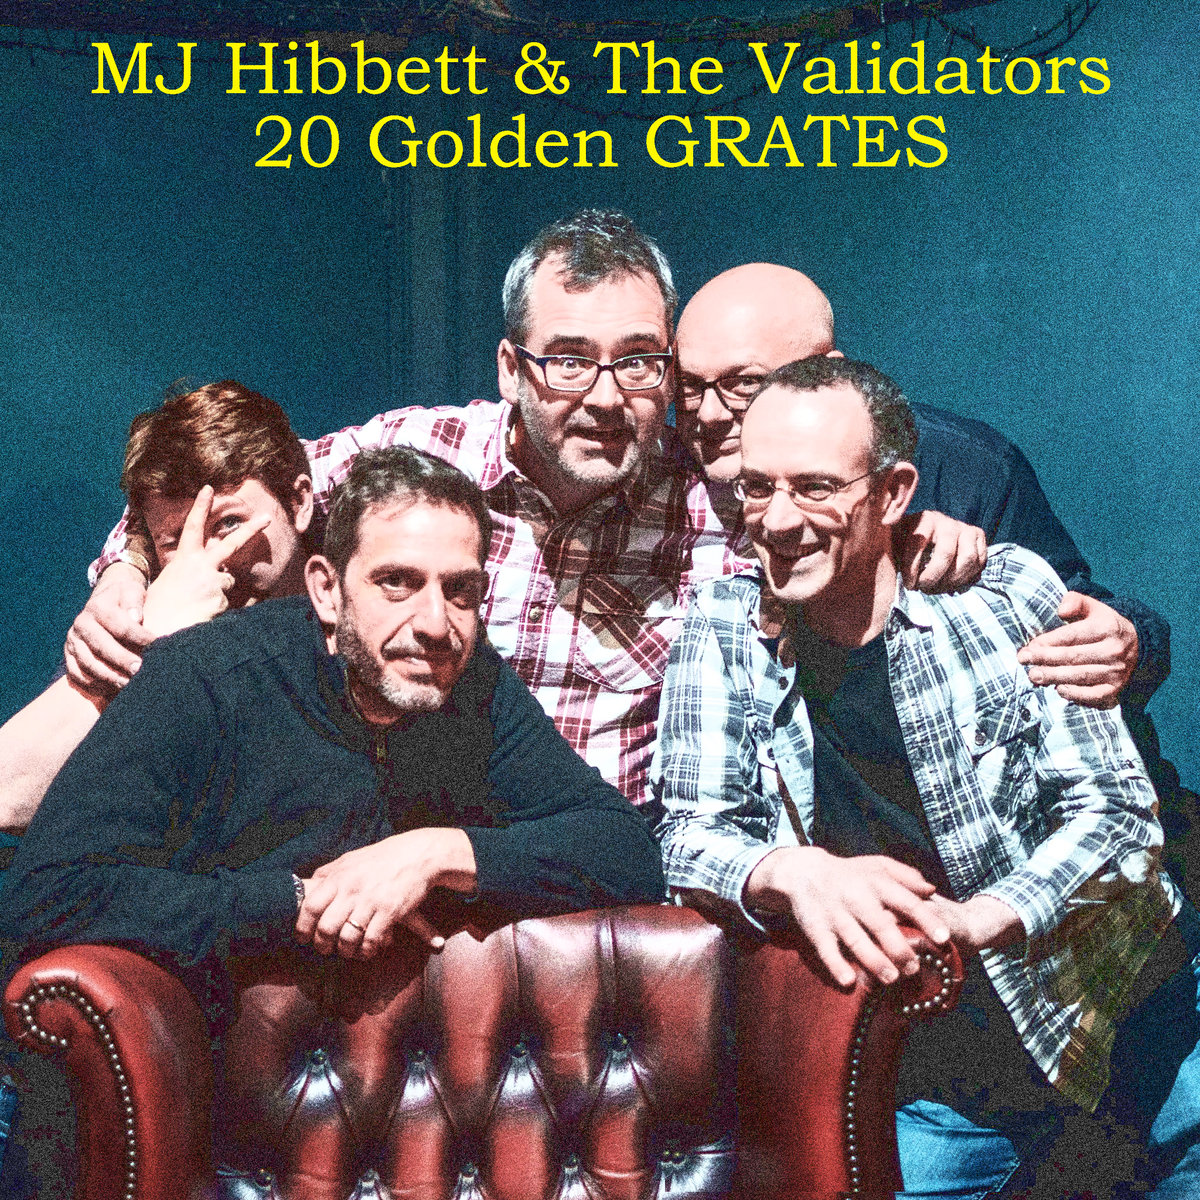 Charming Ramshackle Indie Rock Joy: MJ Hibbett & The Validators' 20 Golden GRATES